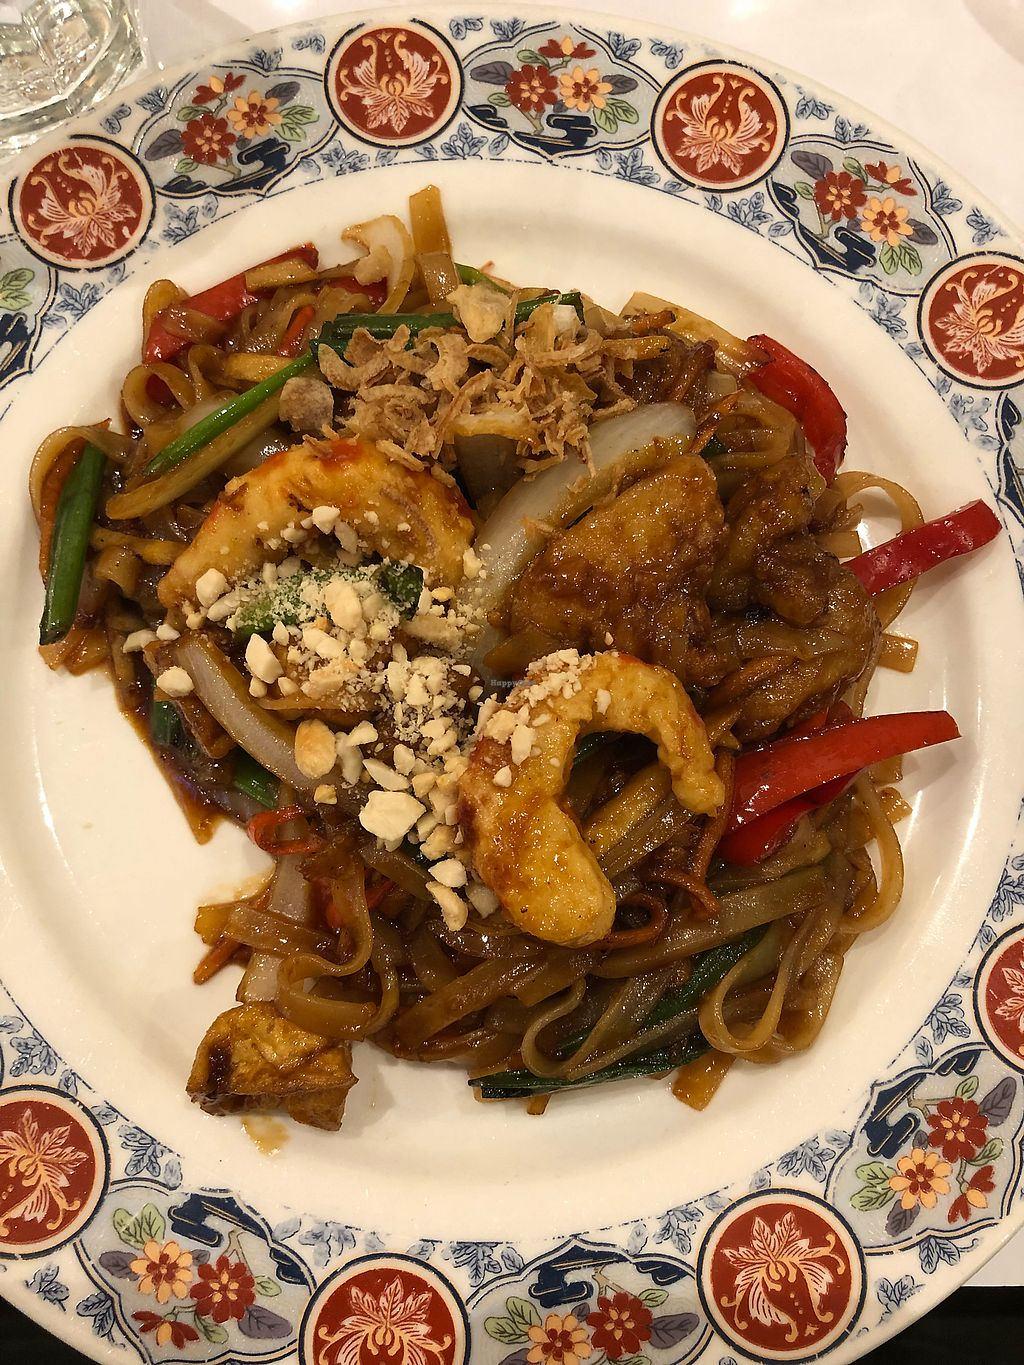 """Photo of Loving Hut  by <a href=""""/members/profile/ChadSchreck"""">ChadSchreck</a> <br/>Pad Thai  <br/> December 30, 2017  - <a href='/contact/abuse/image/703/341087'>Report</a>"""